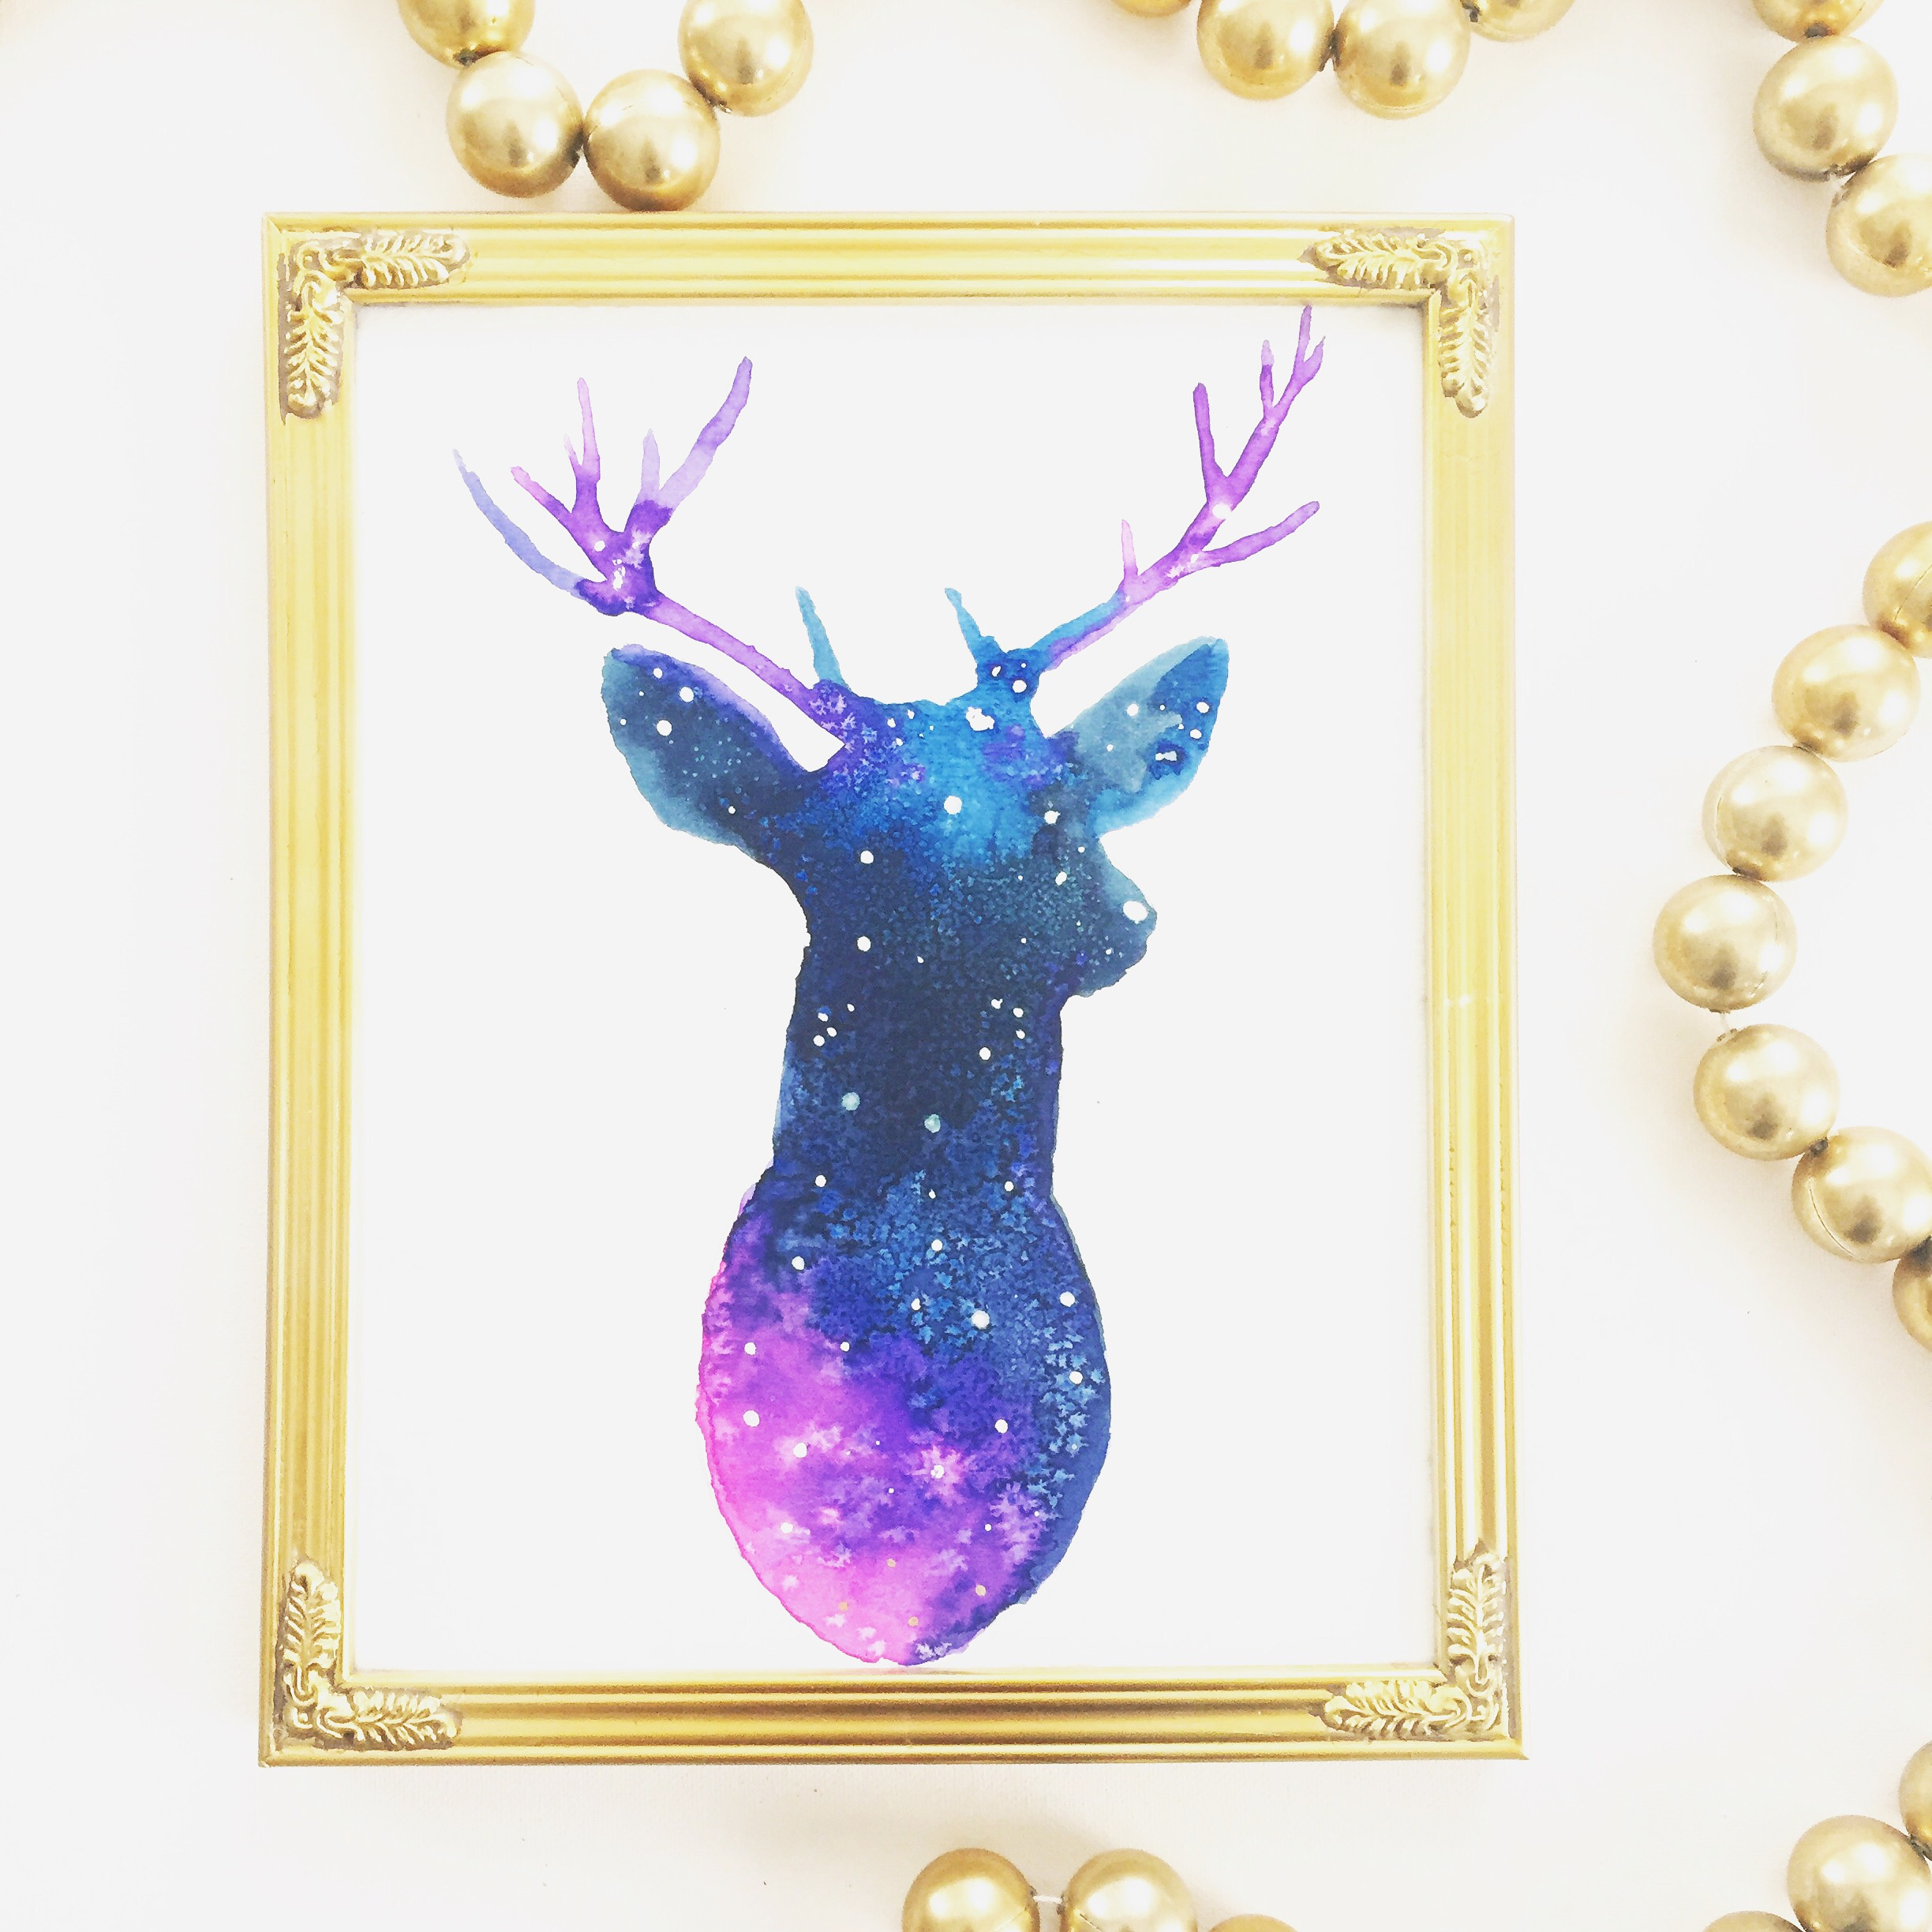 Galaxy Reindeer, made by Riley Rose - Age 10